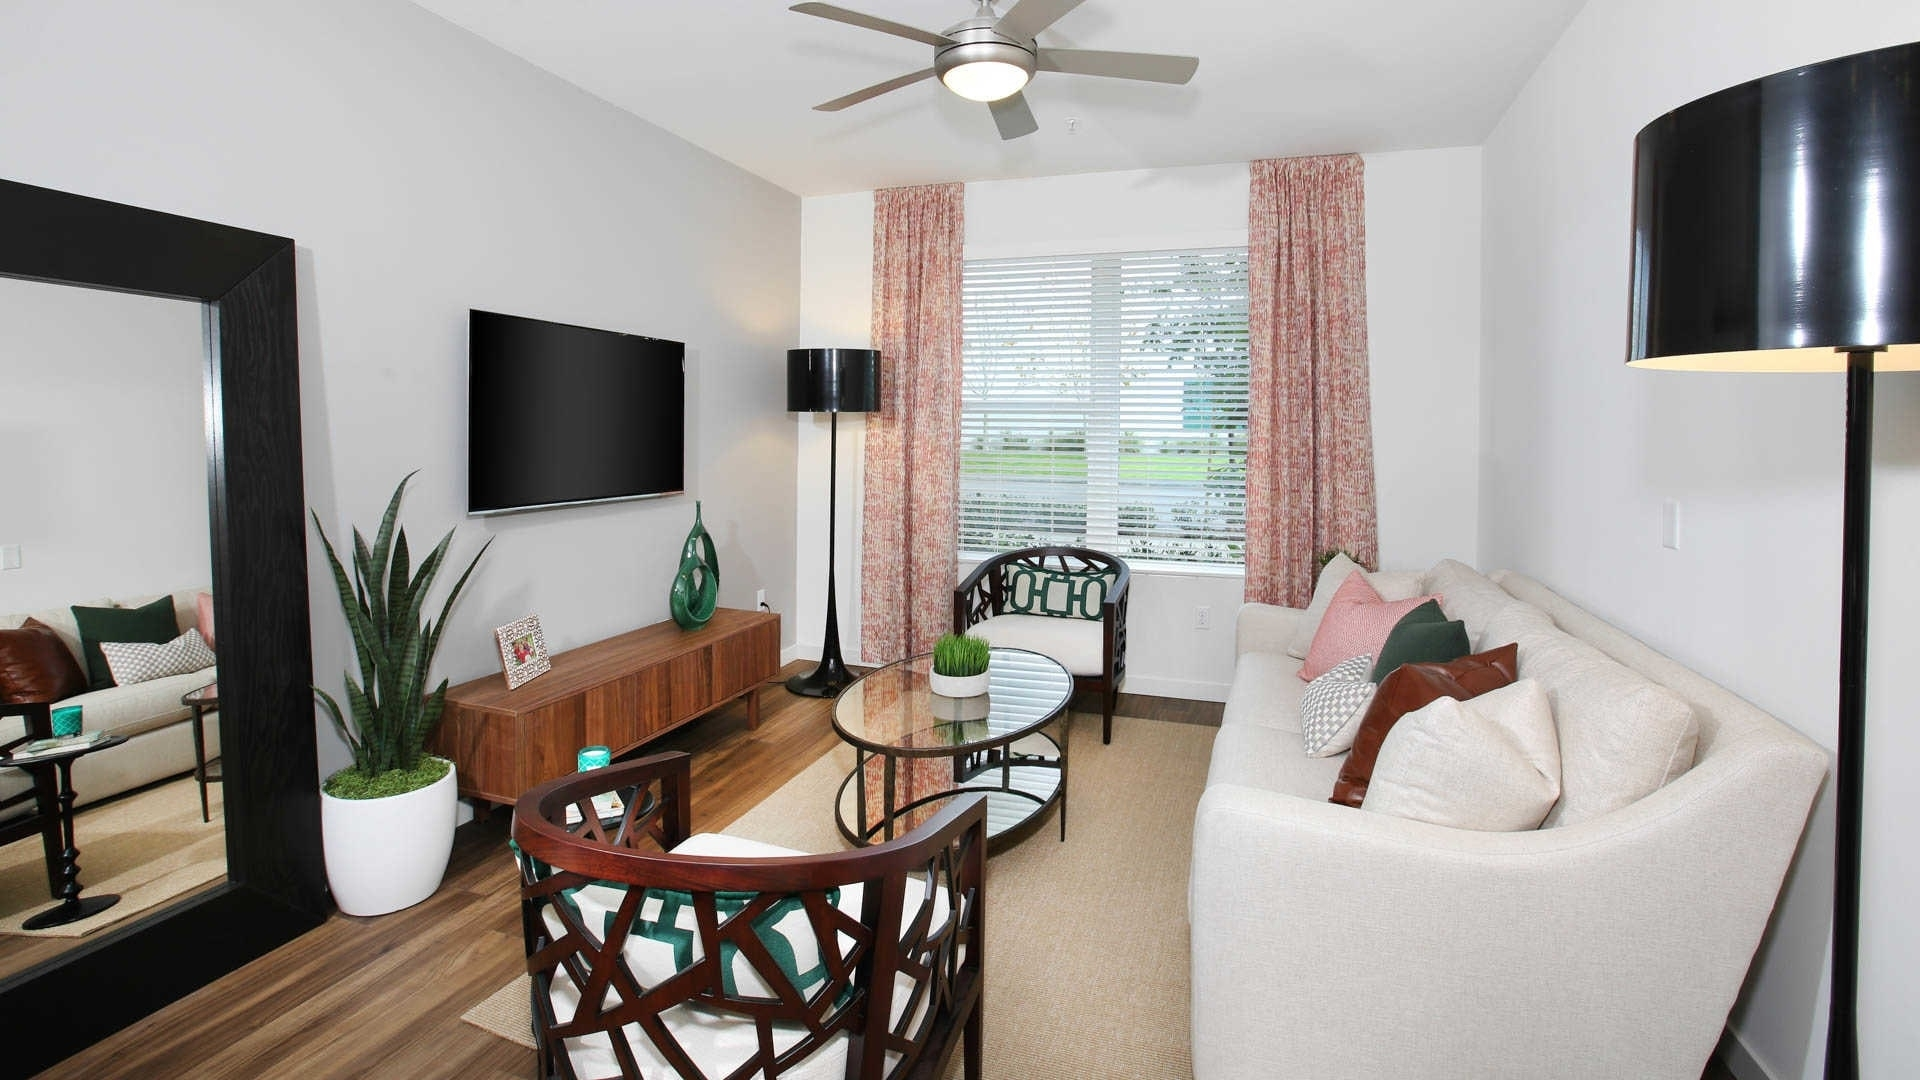 20 Best Apartments For Rent In Irvine, Ca From $870! inside The Best Ideas For Apartments For Rent In Garden Grove